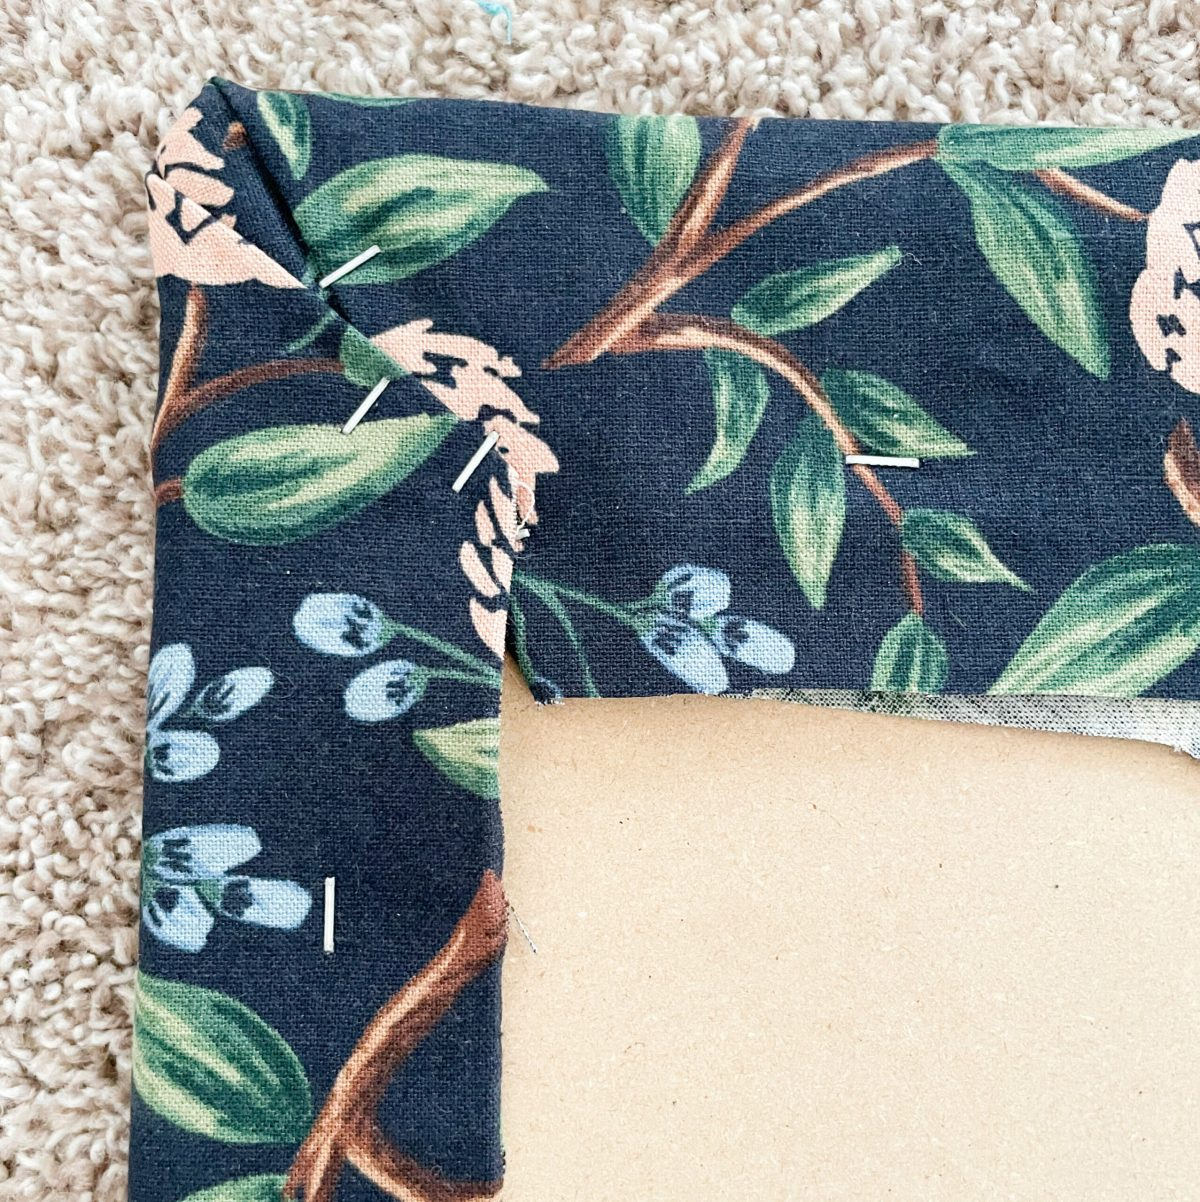 wrap the canvas around the ironing board and staple gun the fabric in place